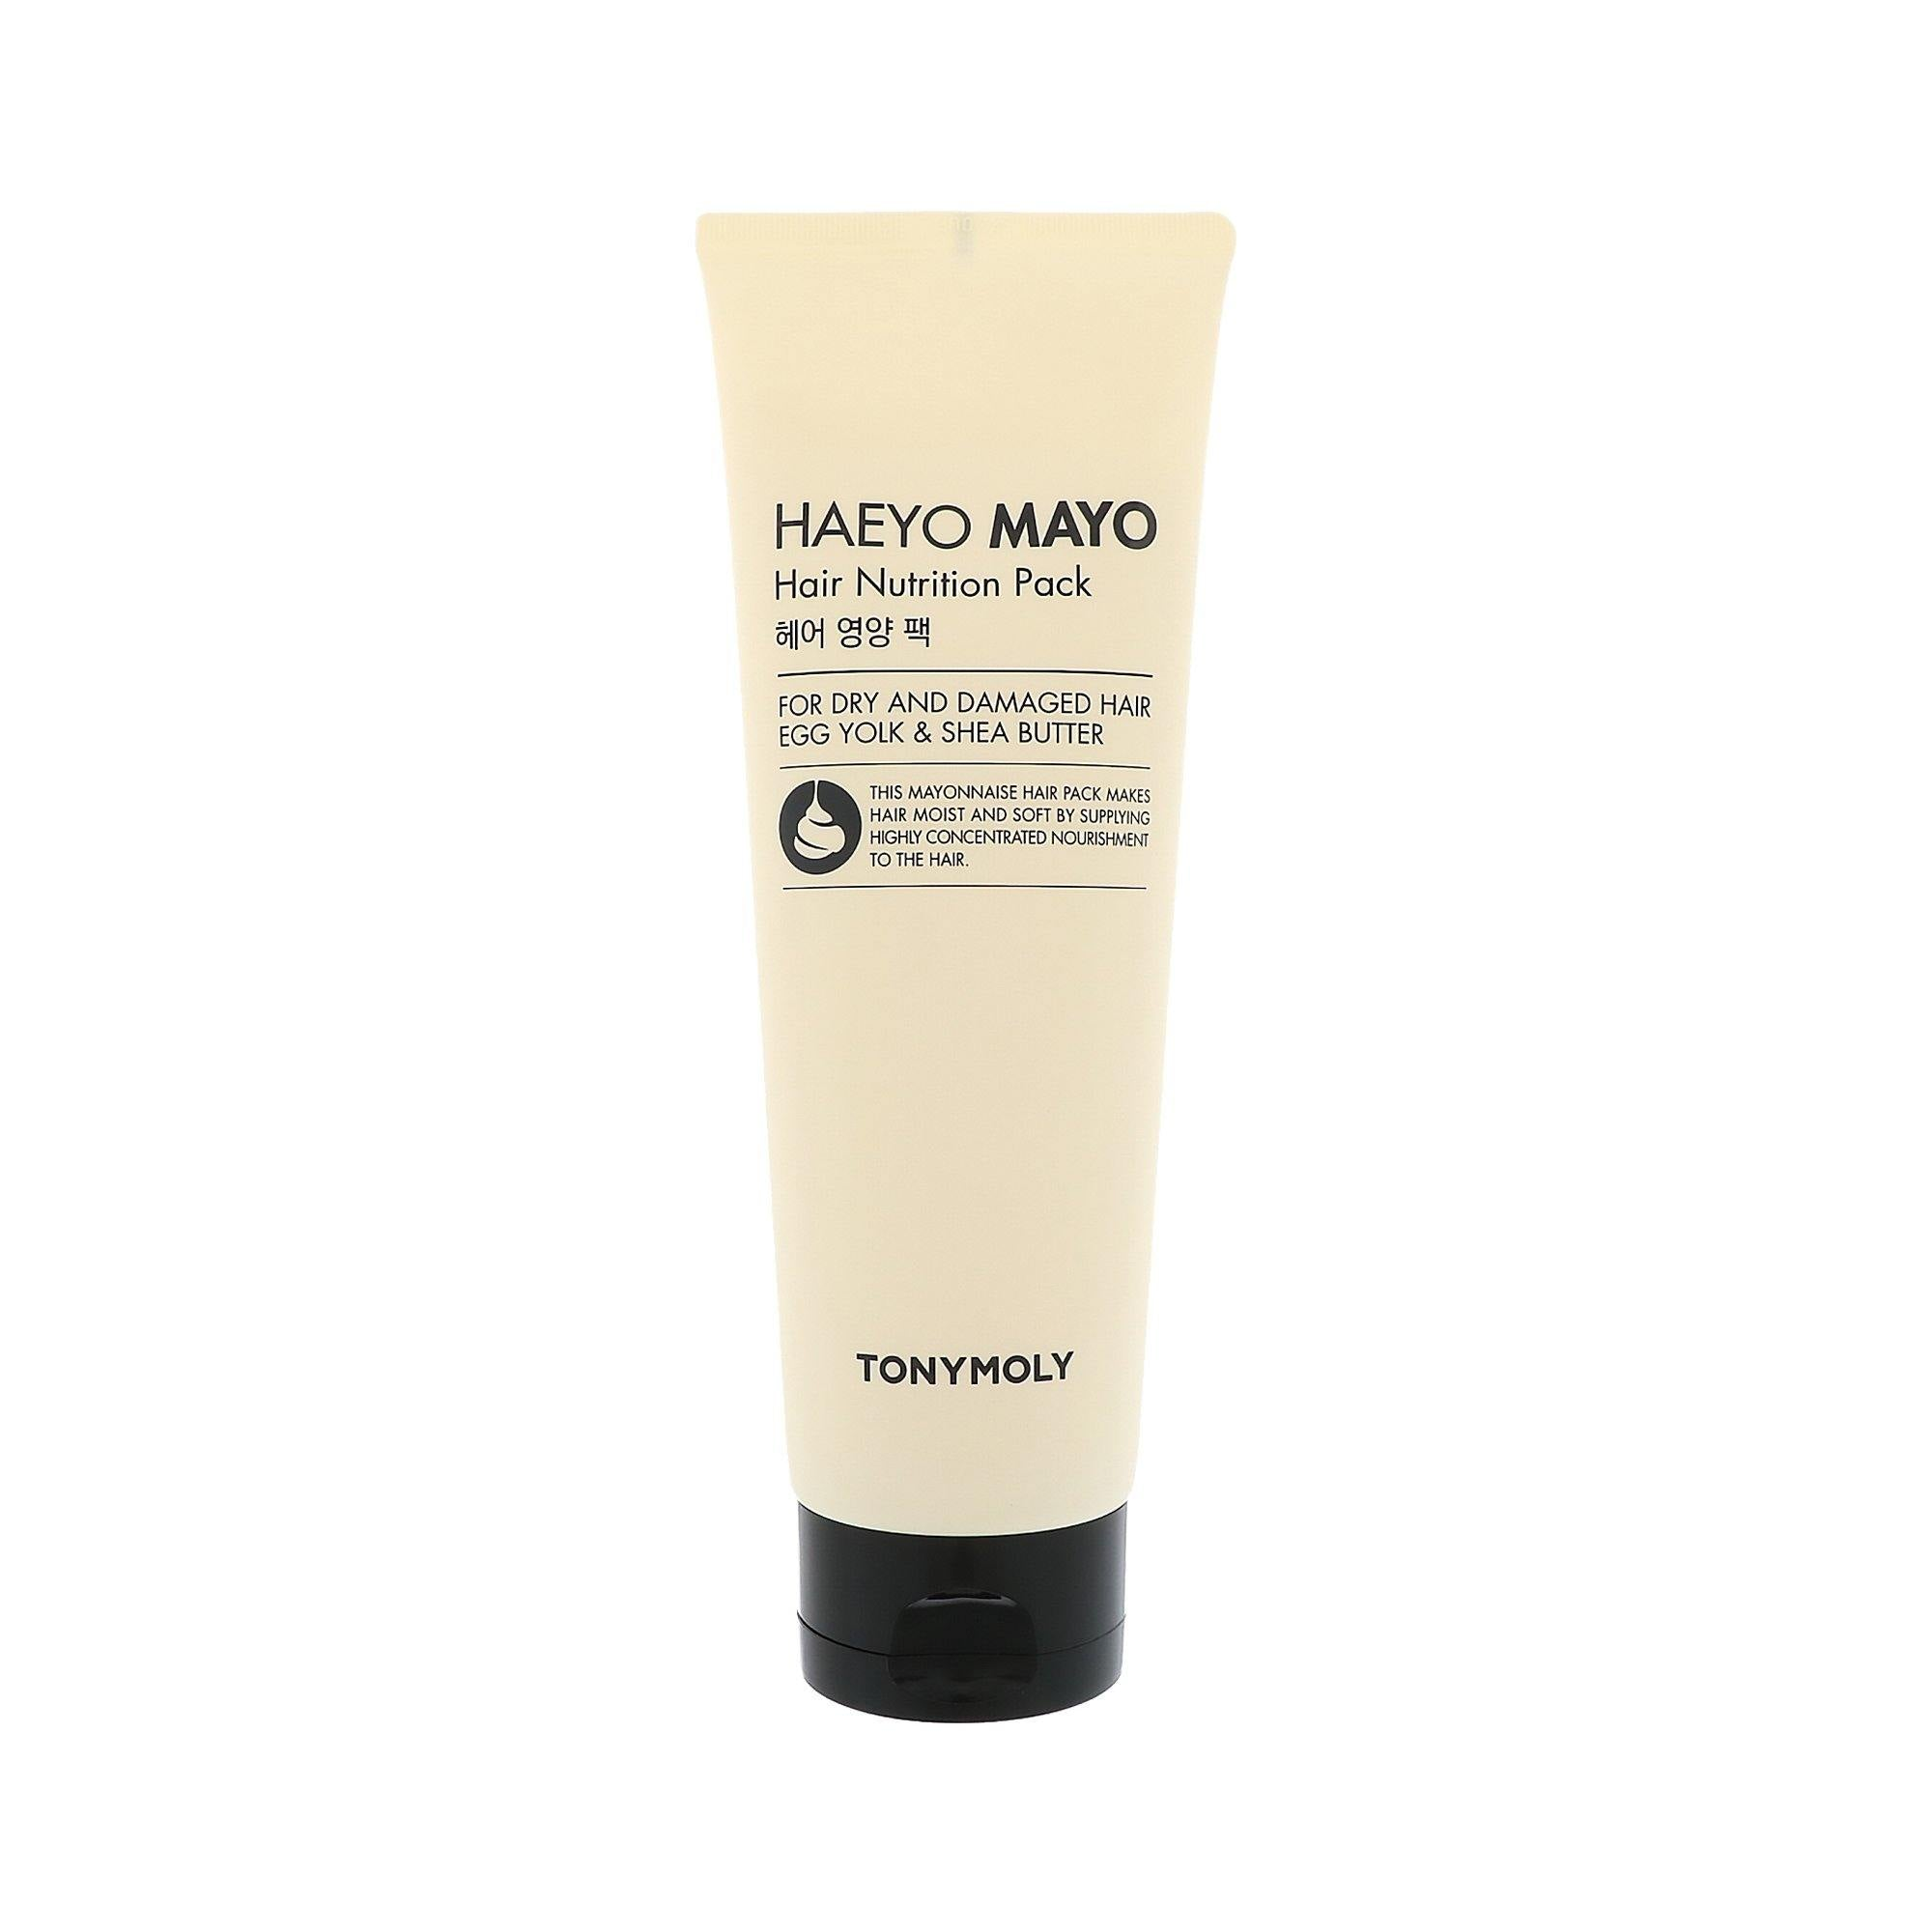 TONYMOLY Haeyo Mayo Hair Nutrition Mask - 250ml | Hydration ¦ Korean Skin Care